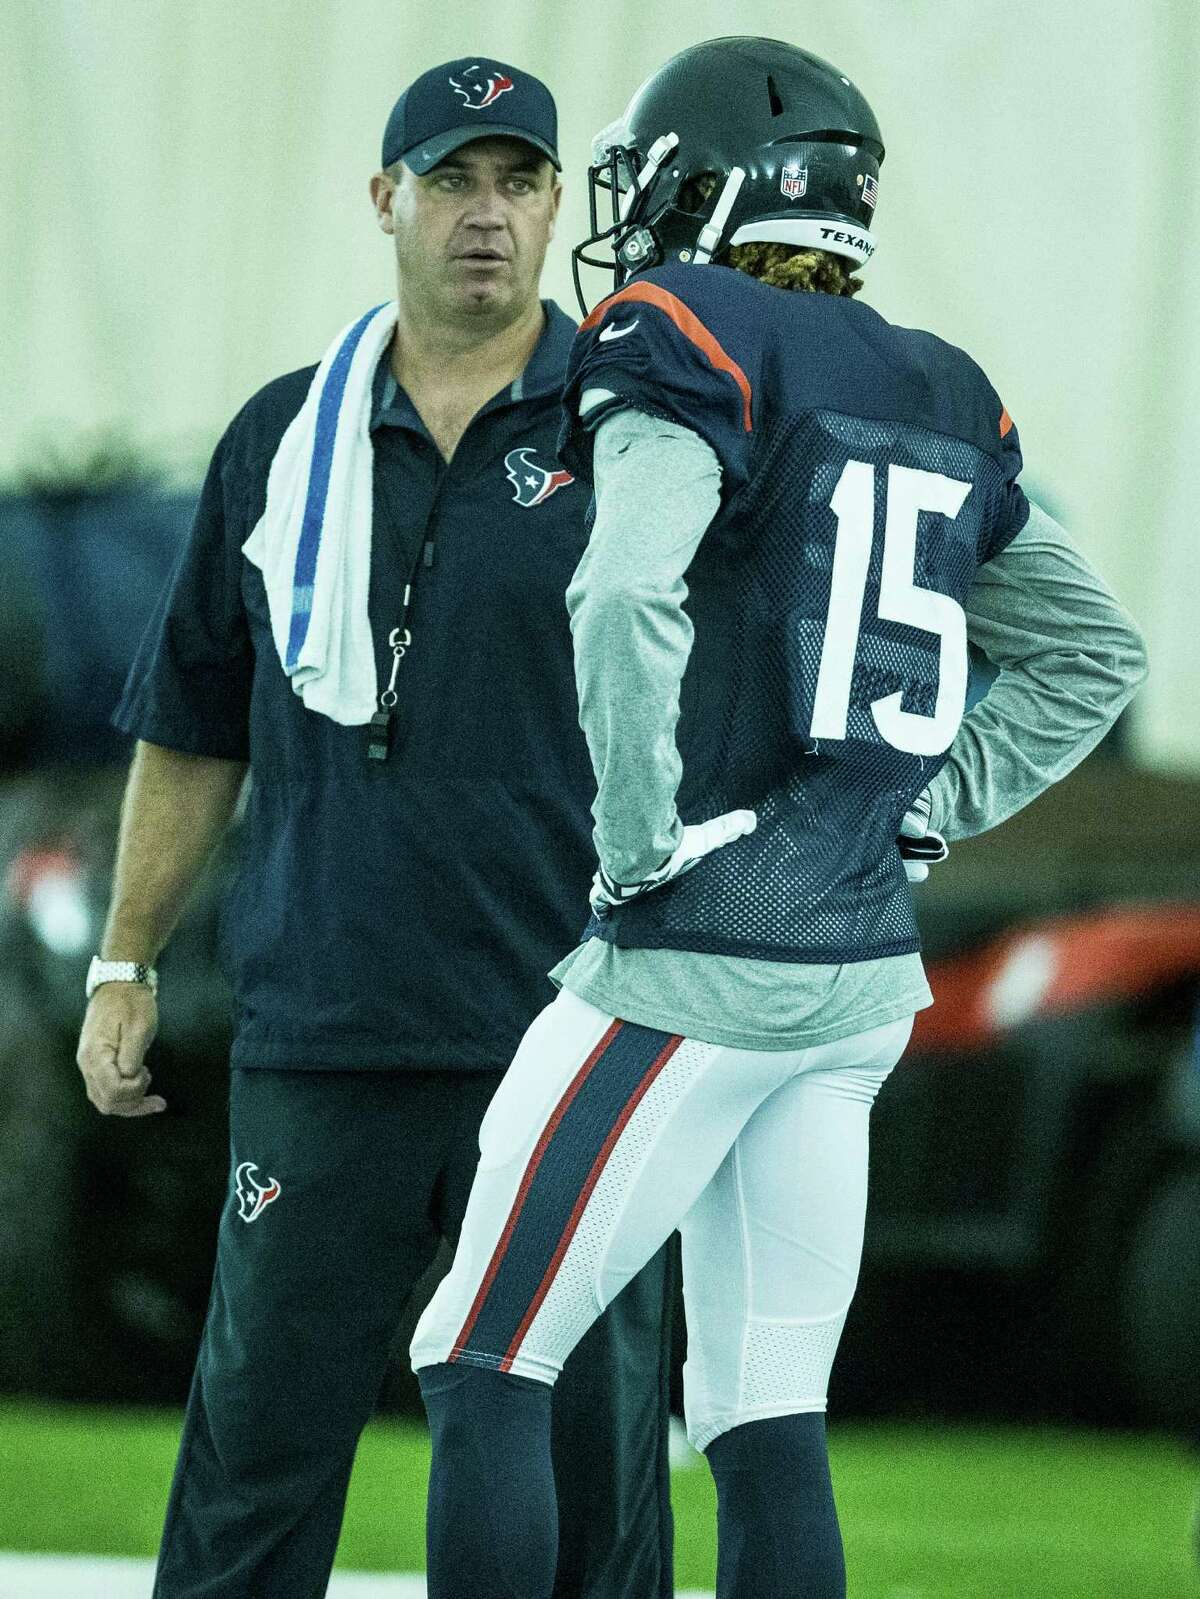 Houston Texans head coach Bill O'Brien, left, talks to wide receiver Will Fuller (15) during Texans training camp at Houston Methodist Training Center on Monday, Aug. 8, 2016, in Houston.